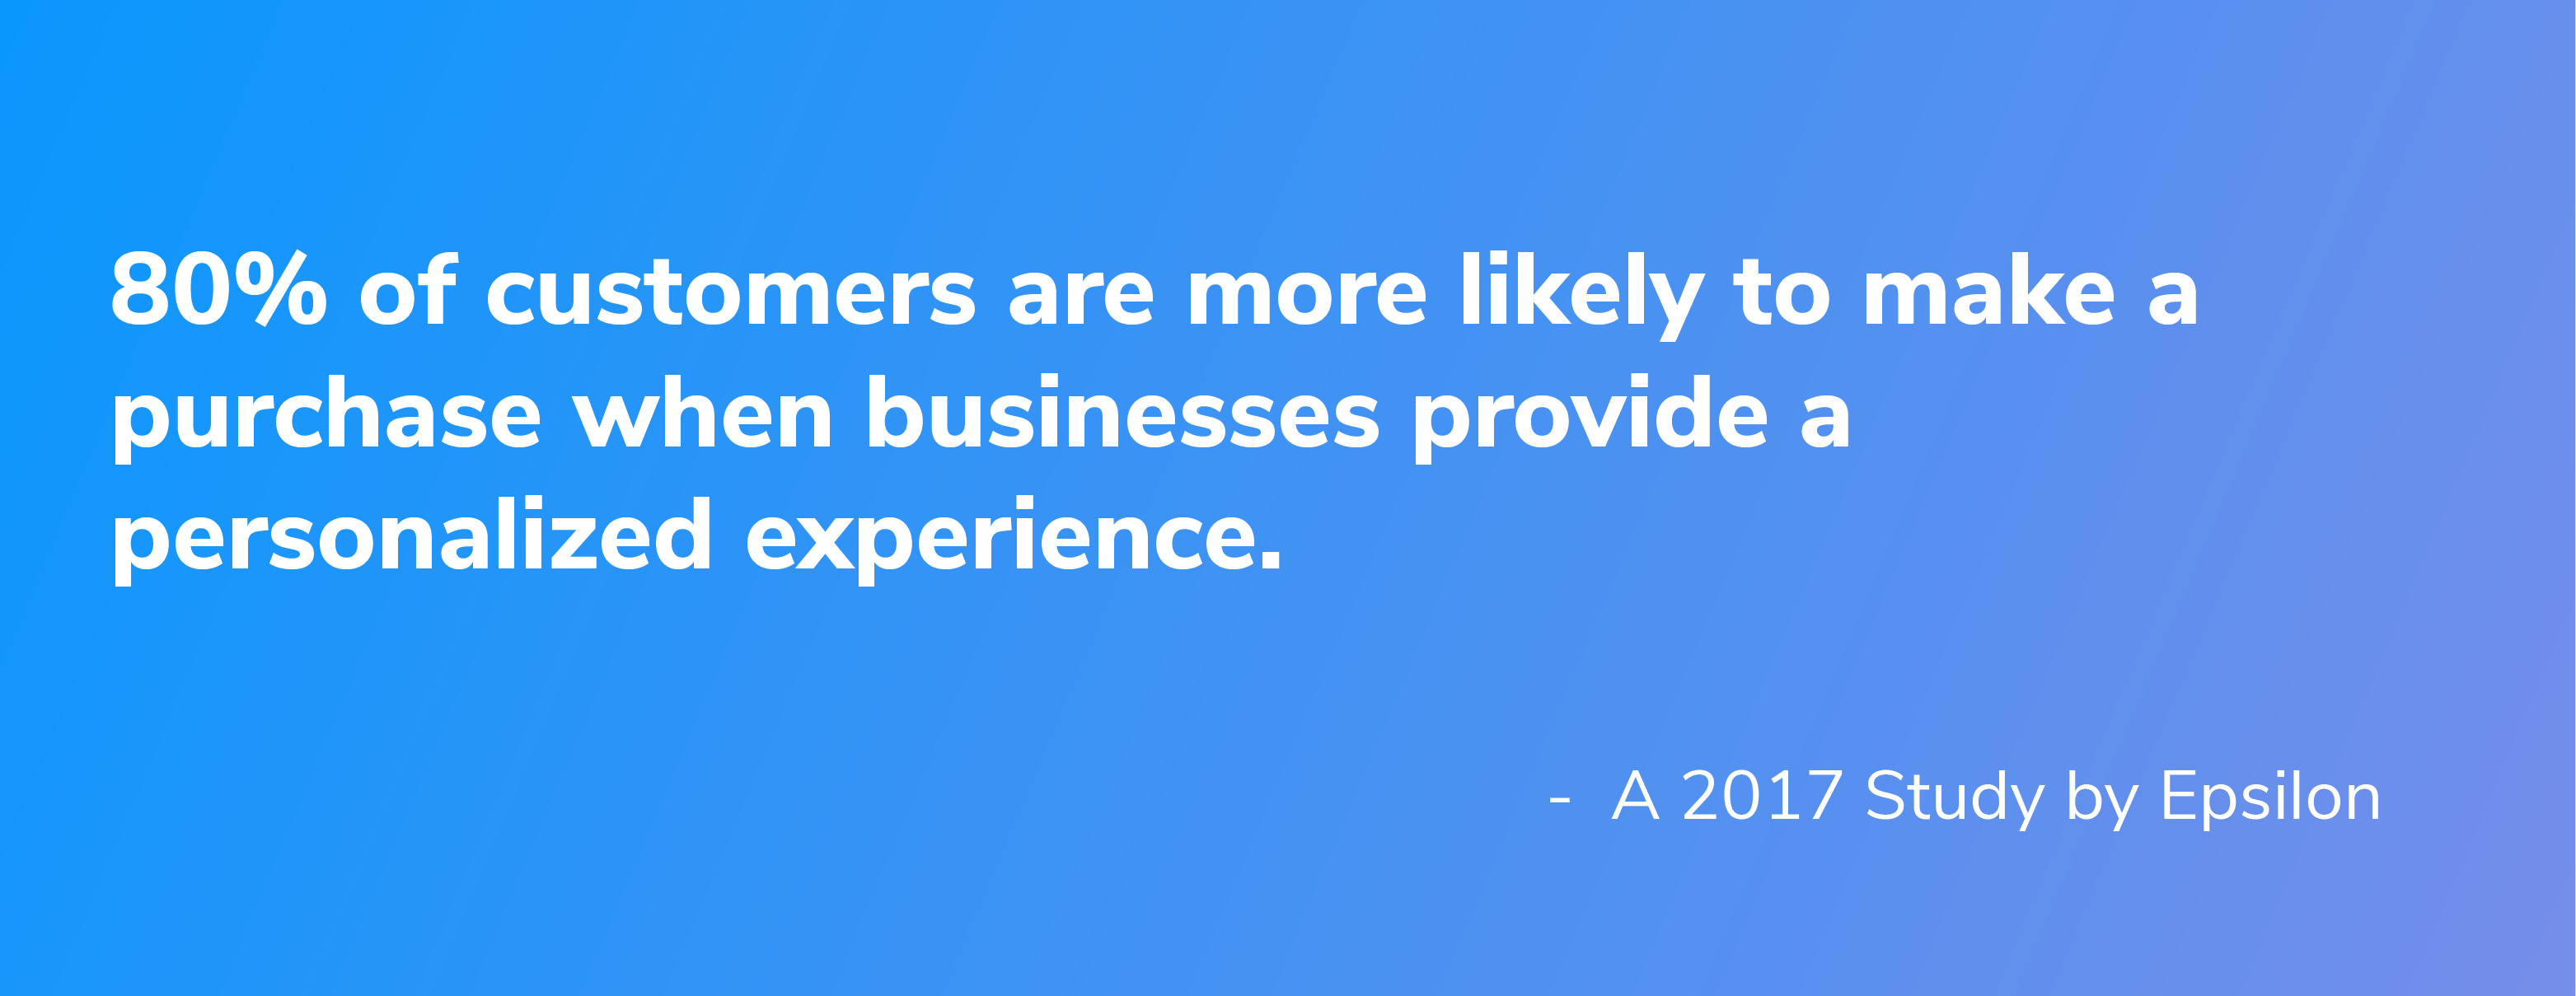 personalized customer experiences improve purchase decisions